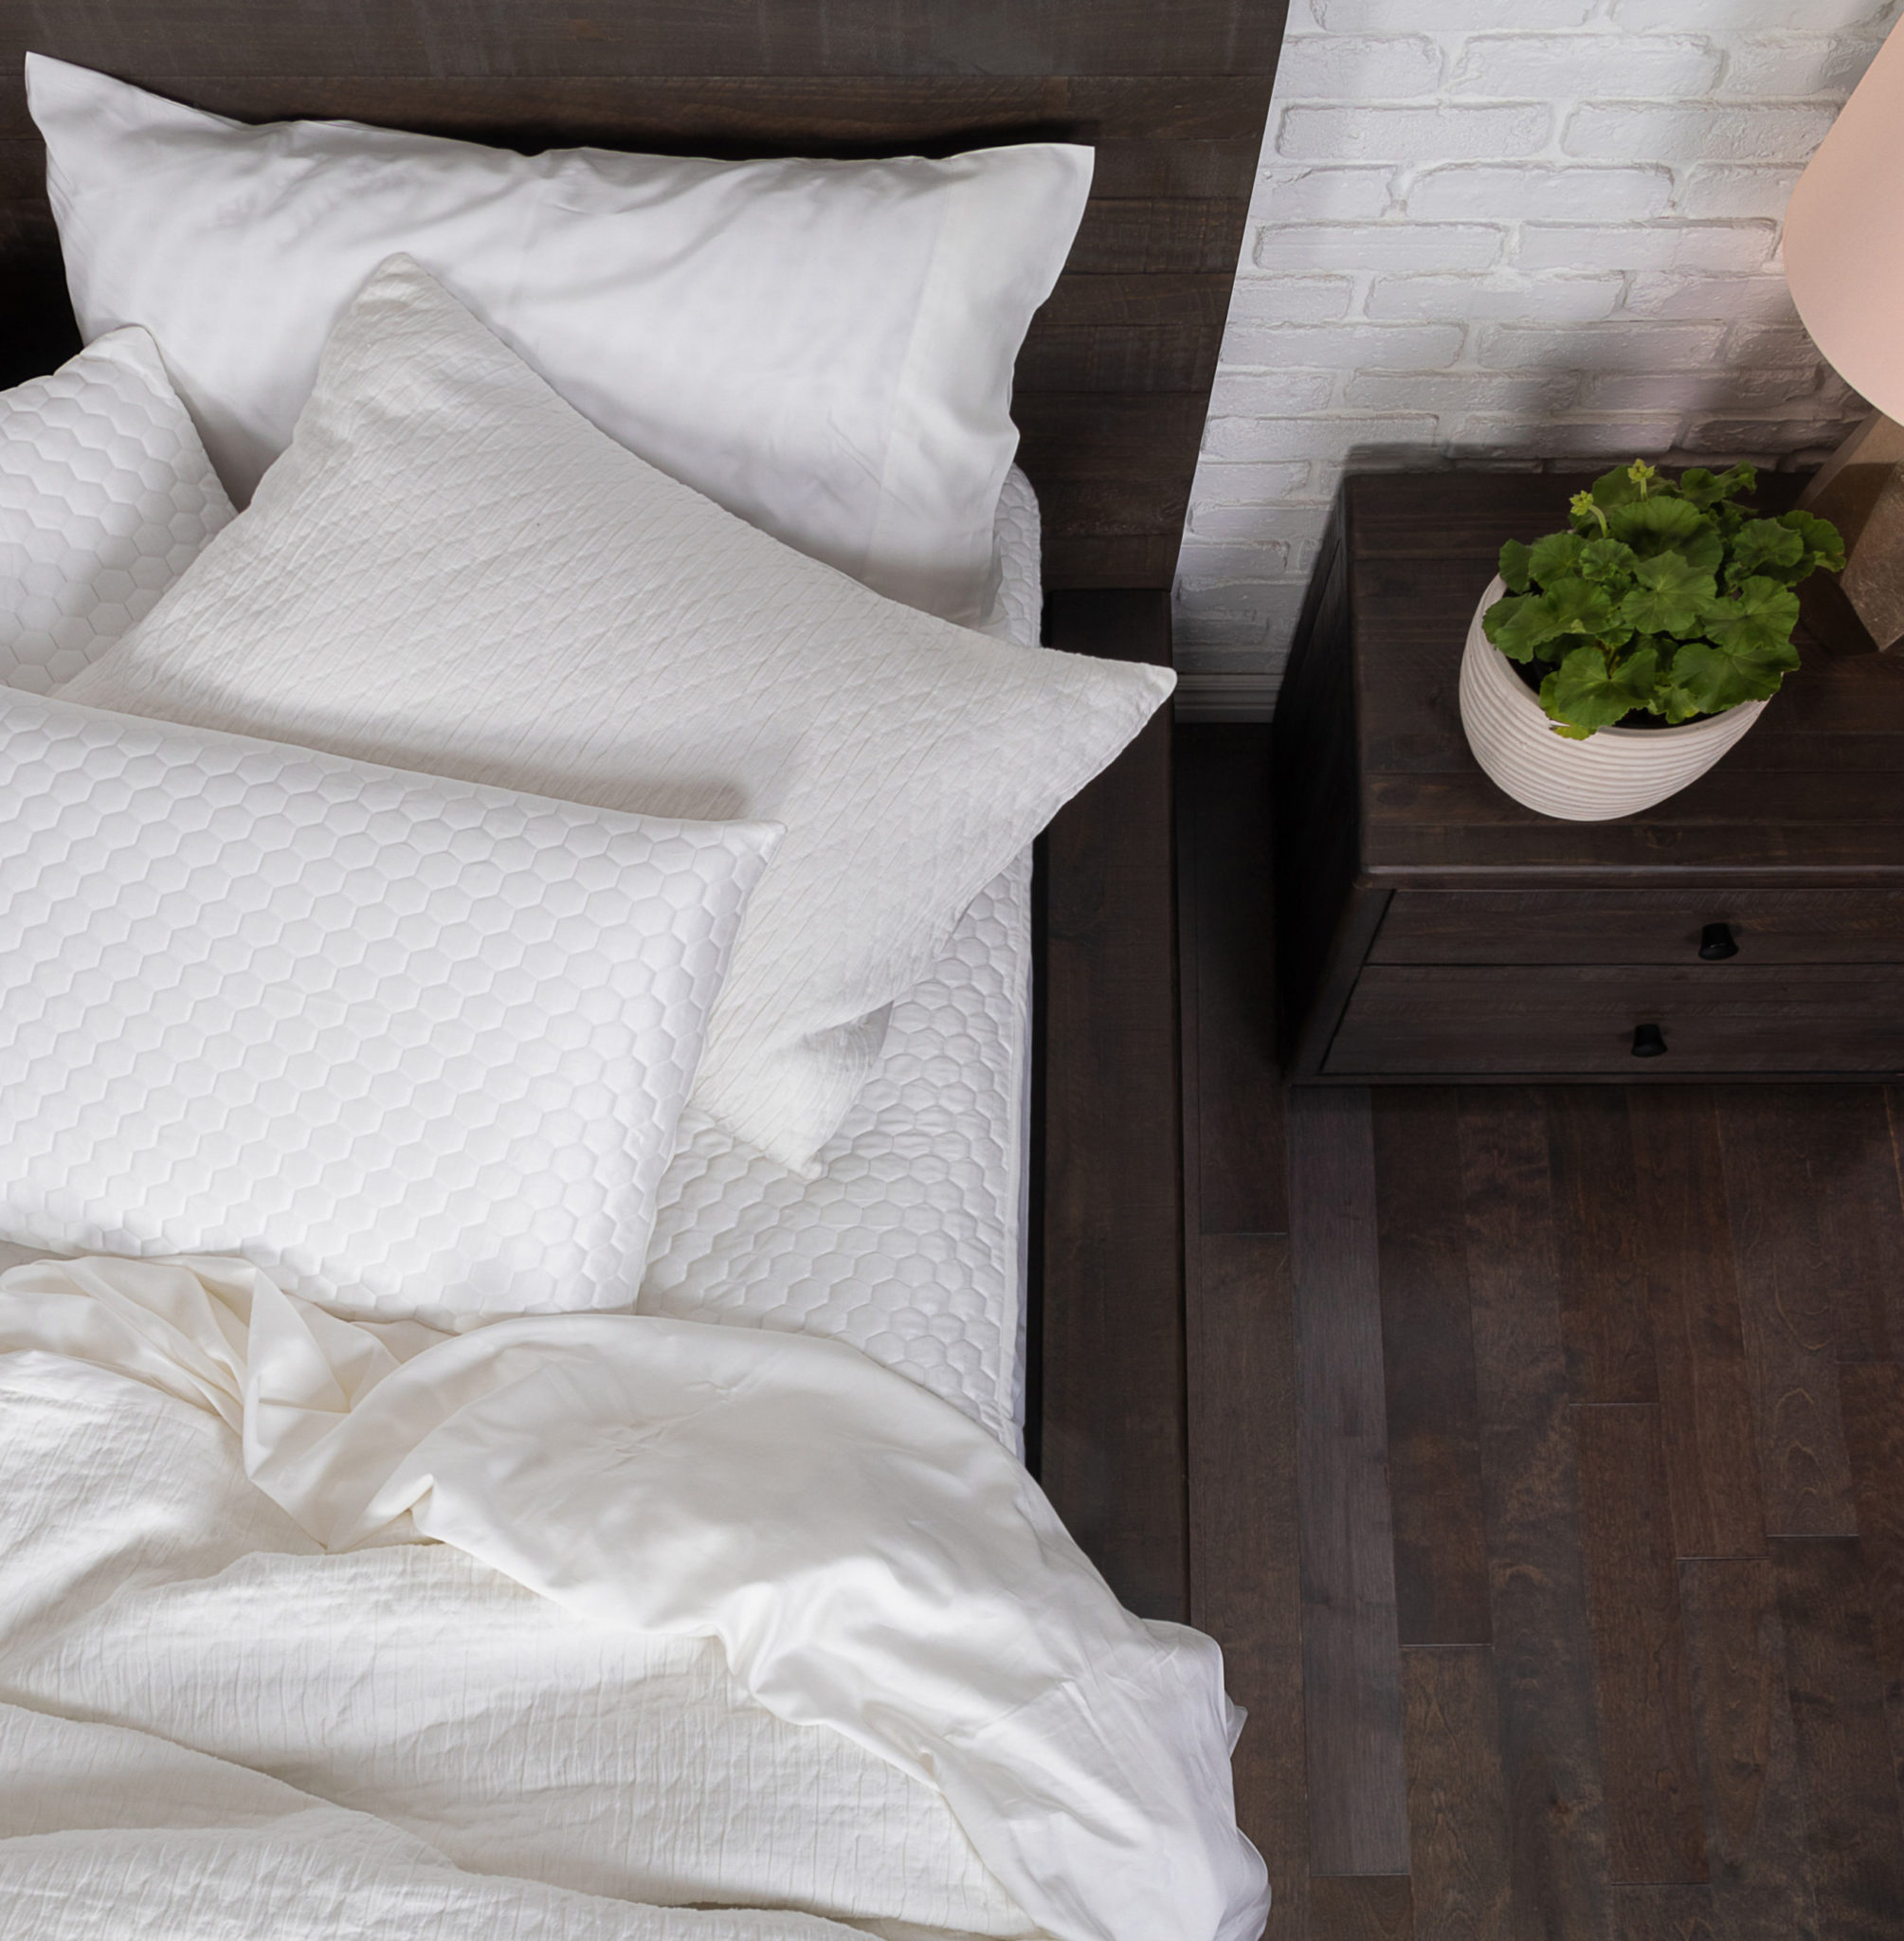 luxury sheets for summer